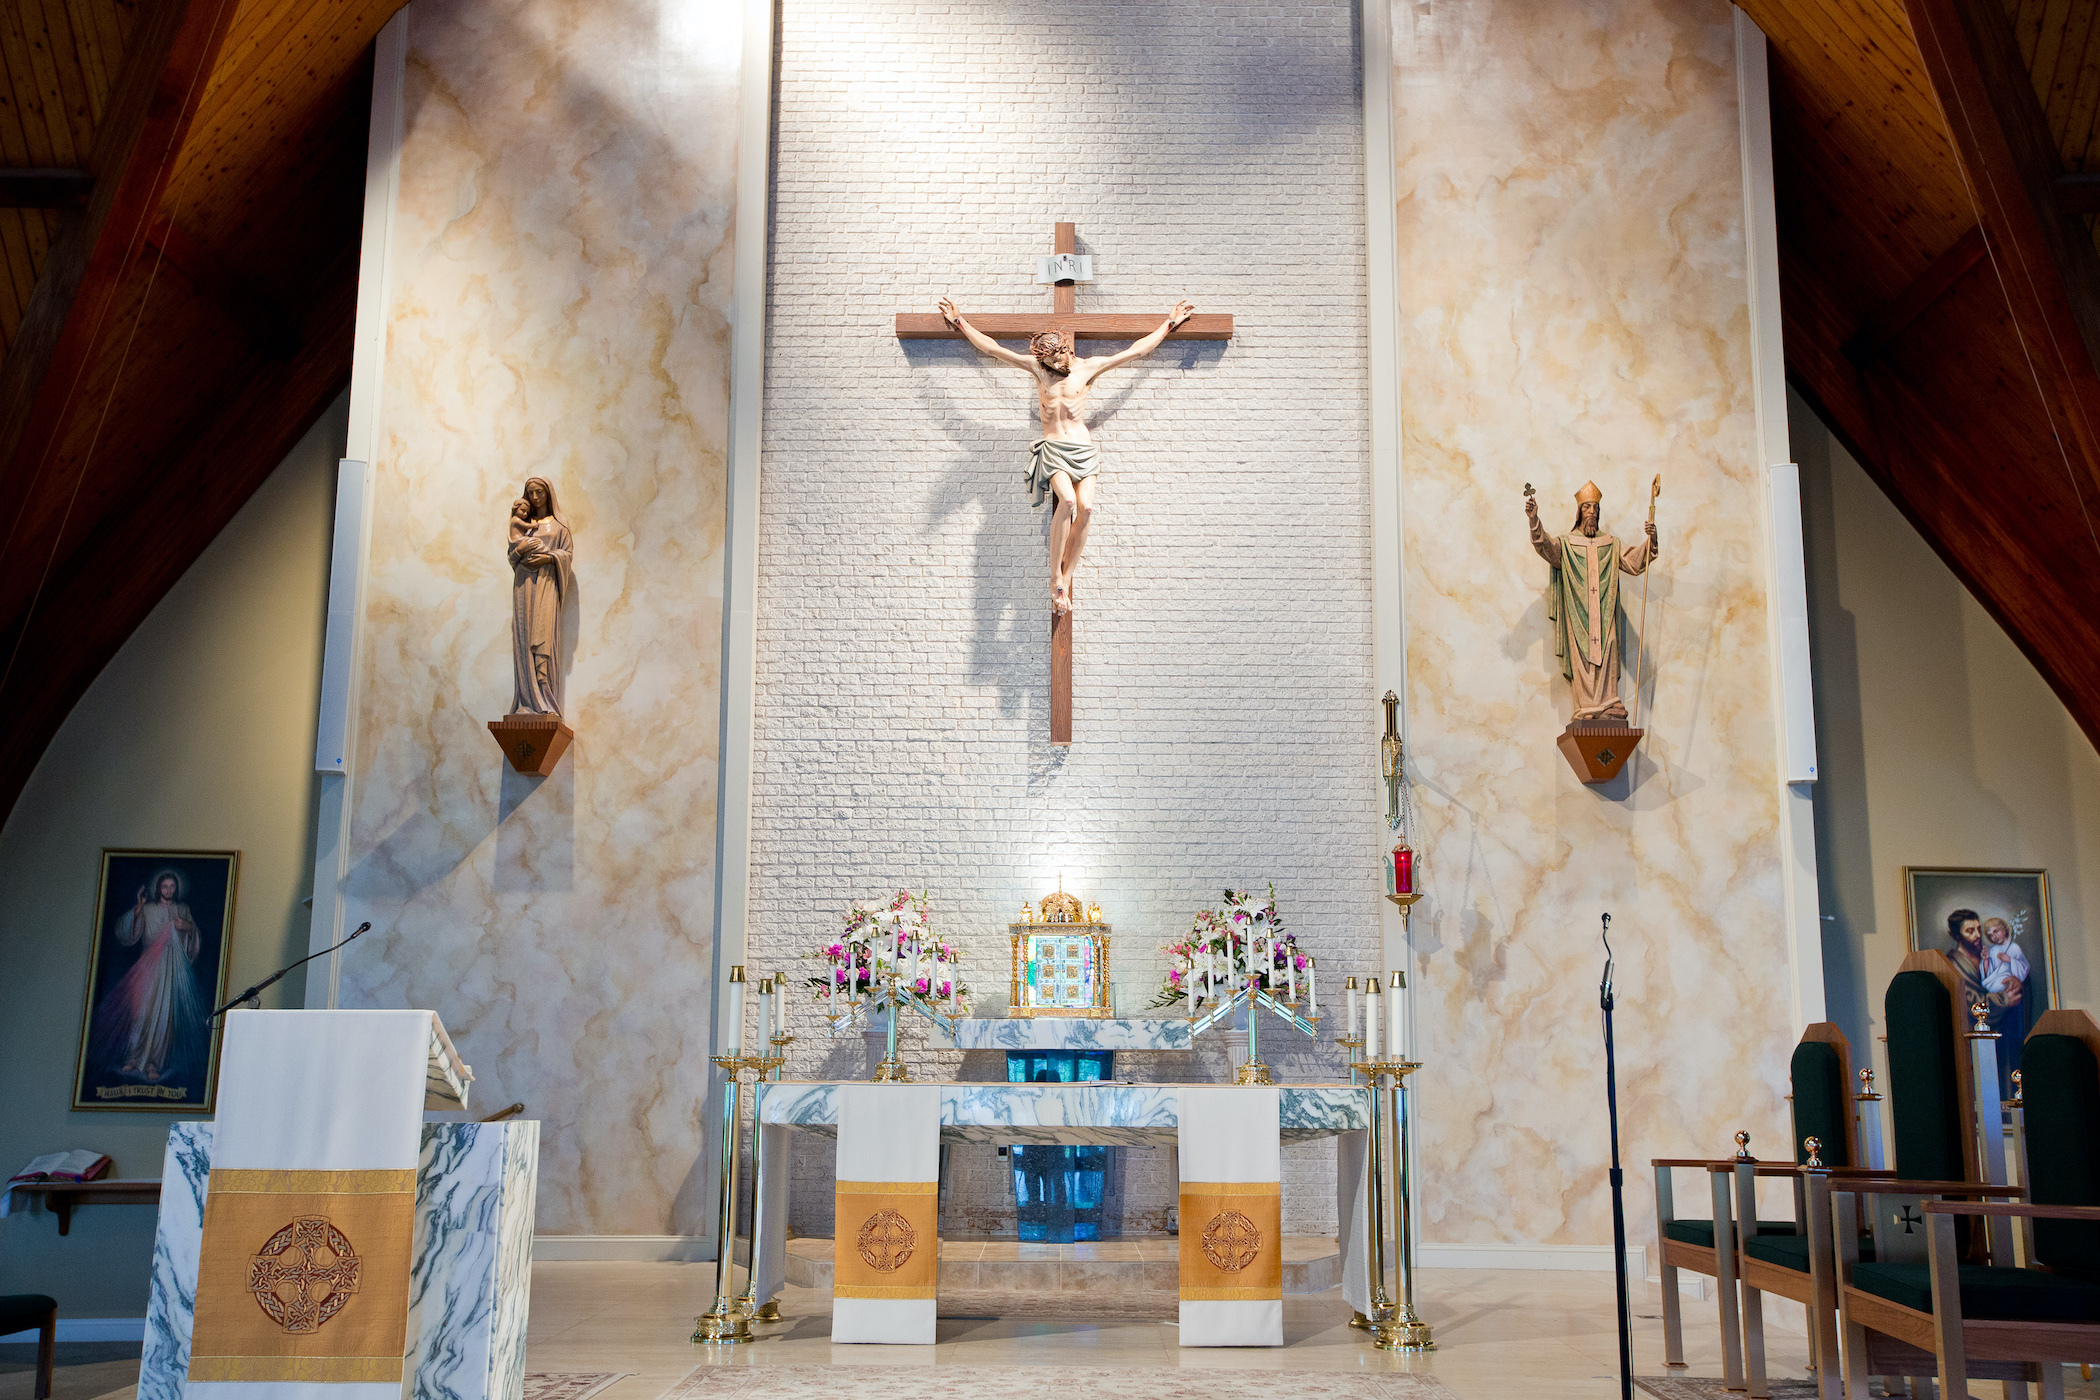 Welcome to St. Patrick's Catholic Church